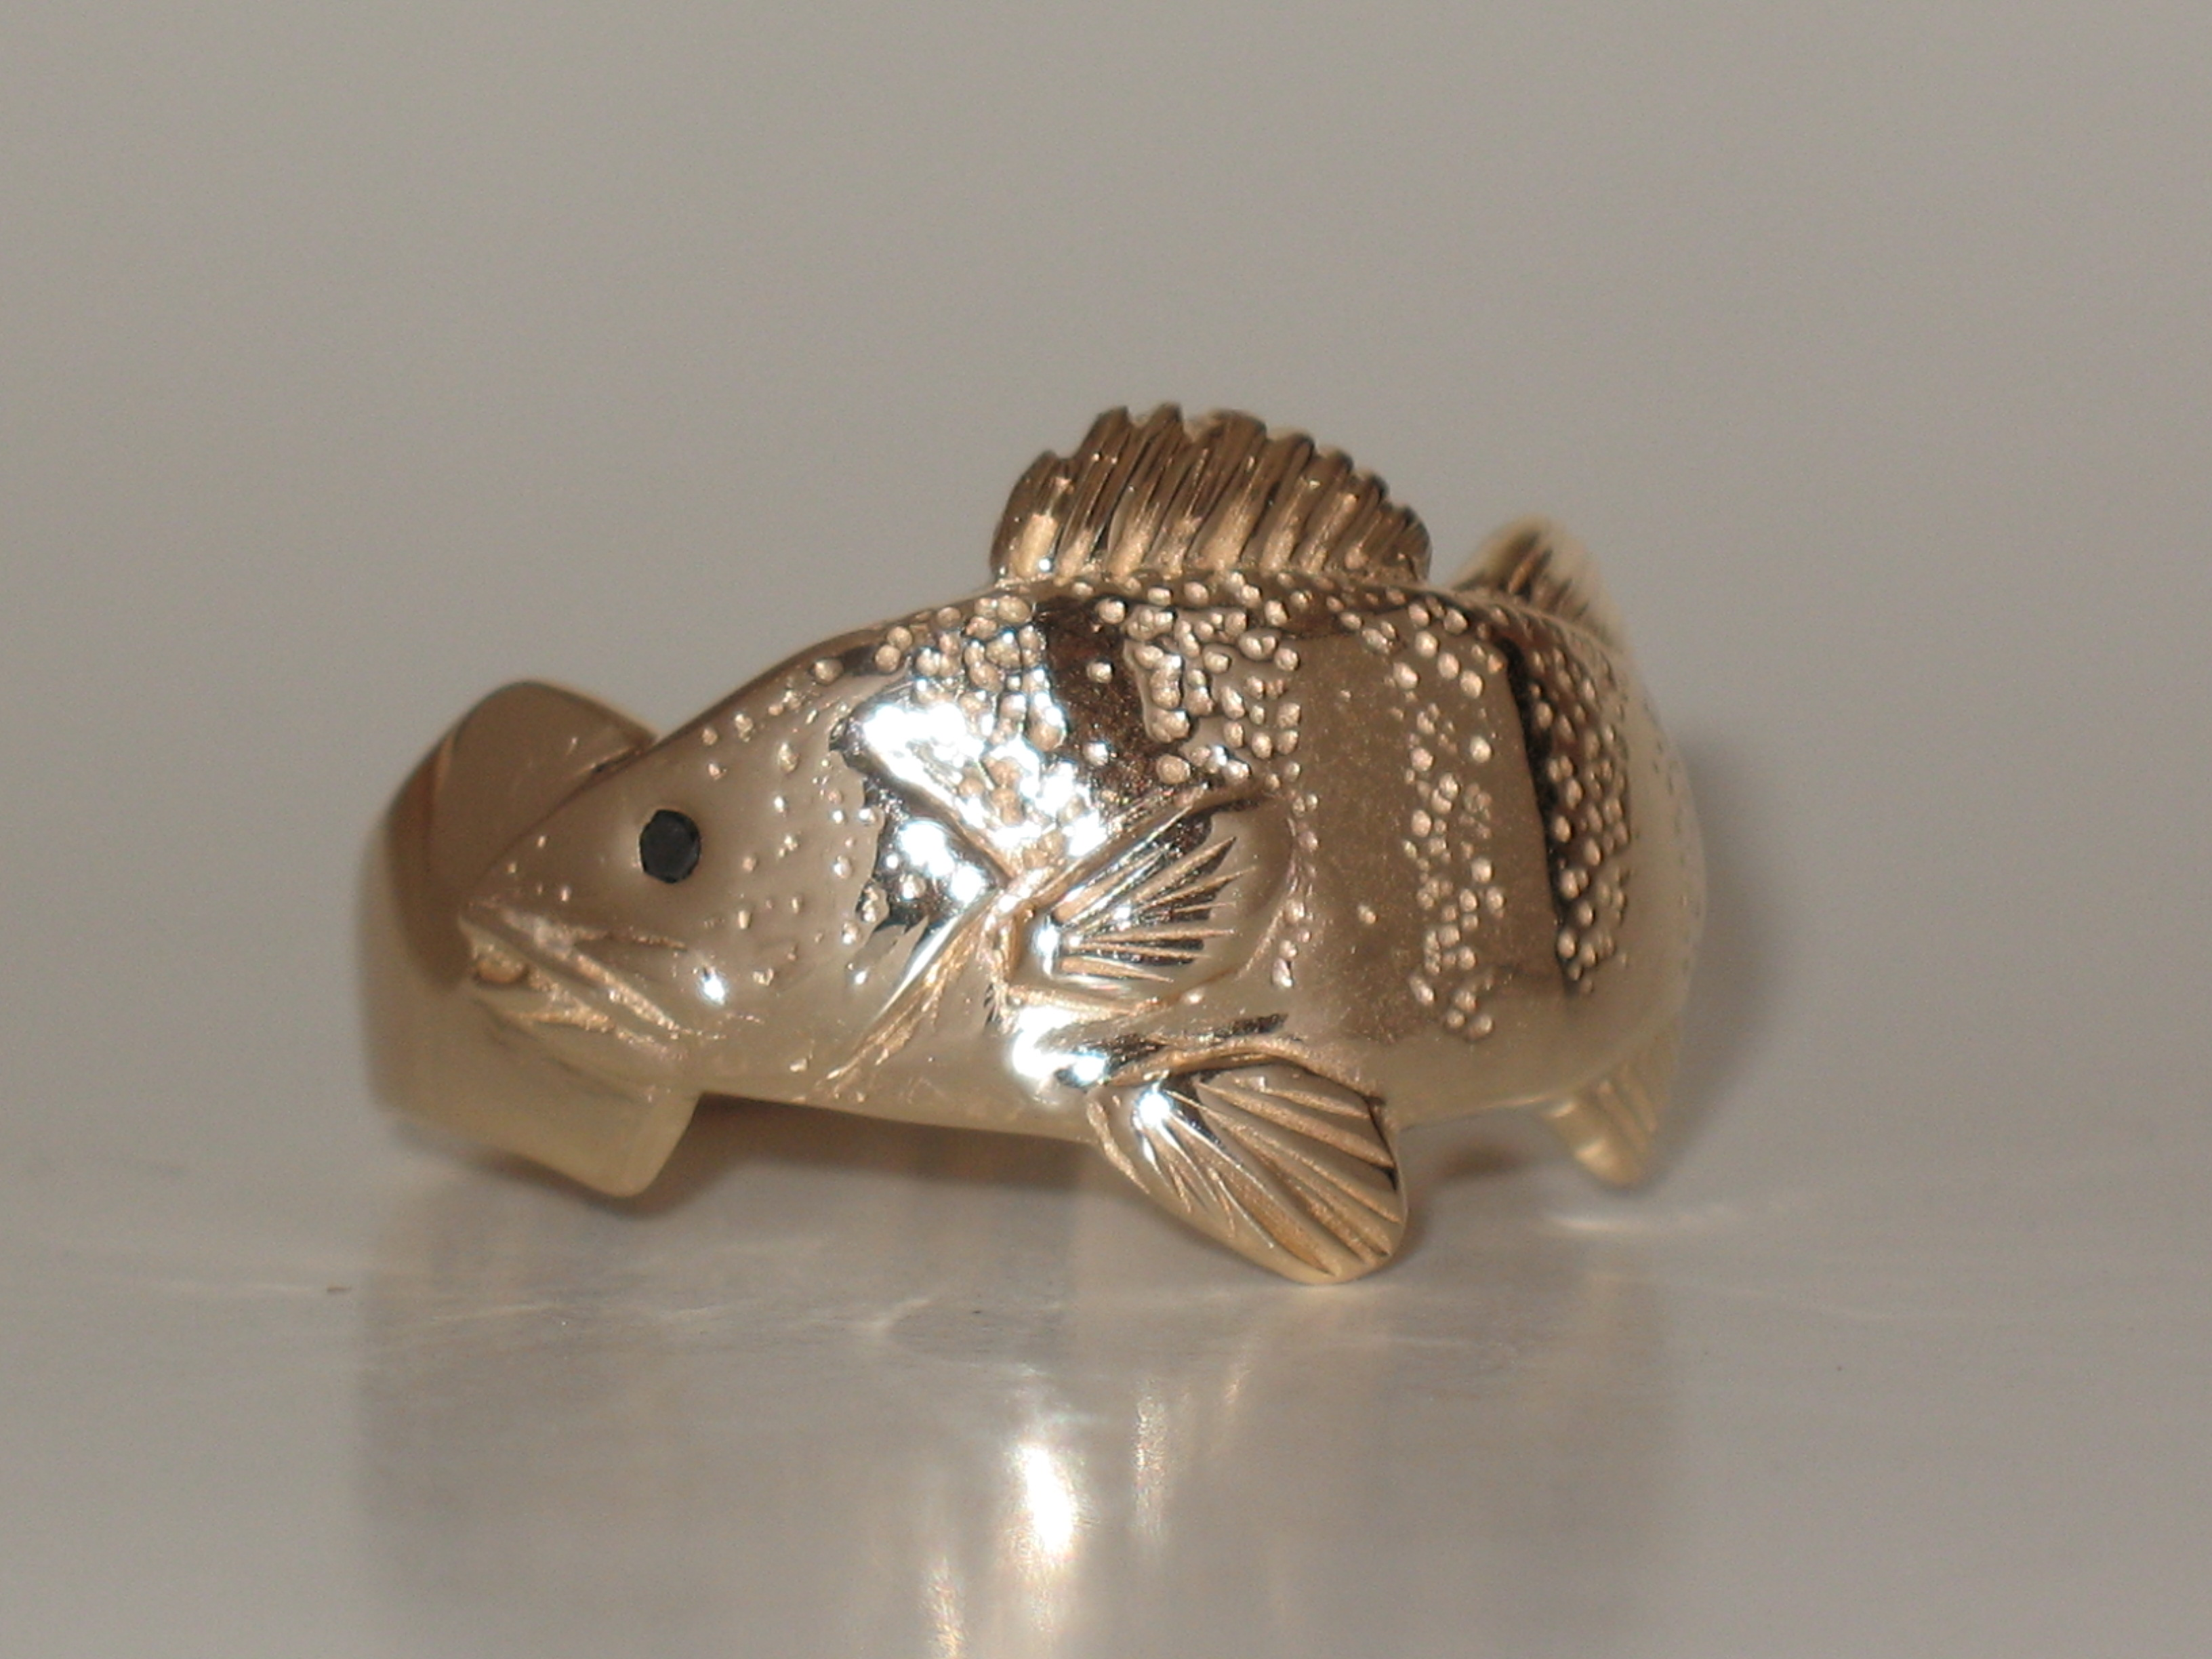 Perch Ring with a Black Diamond Eye